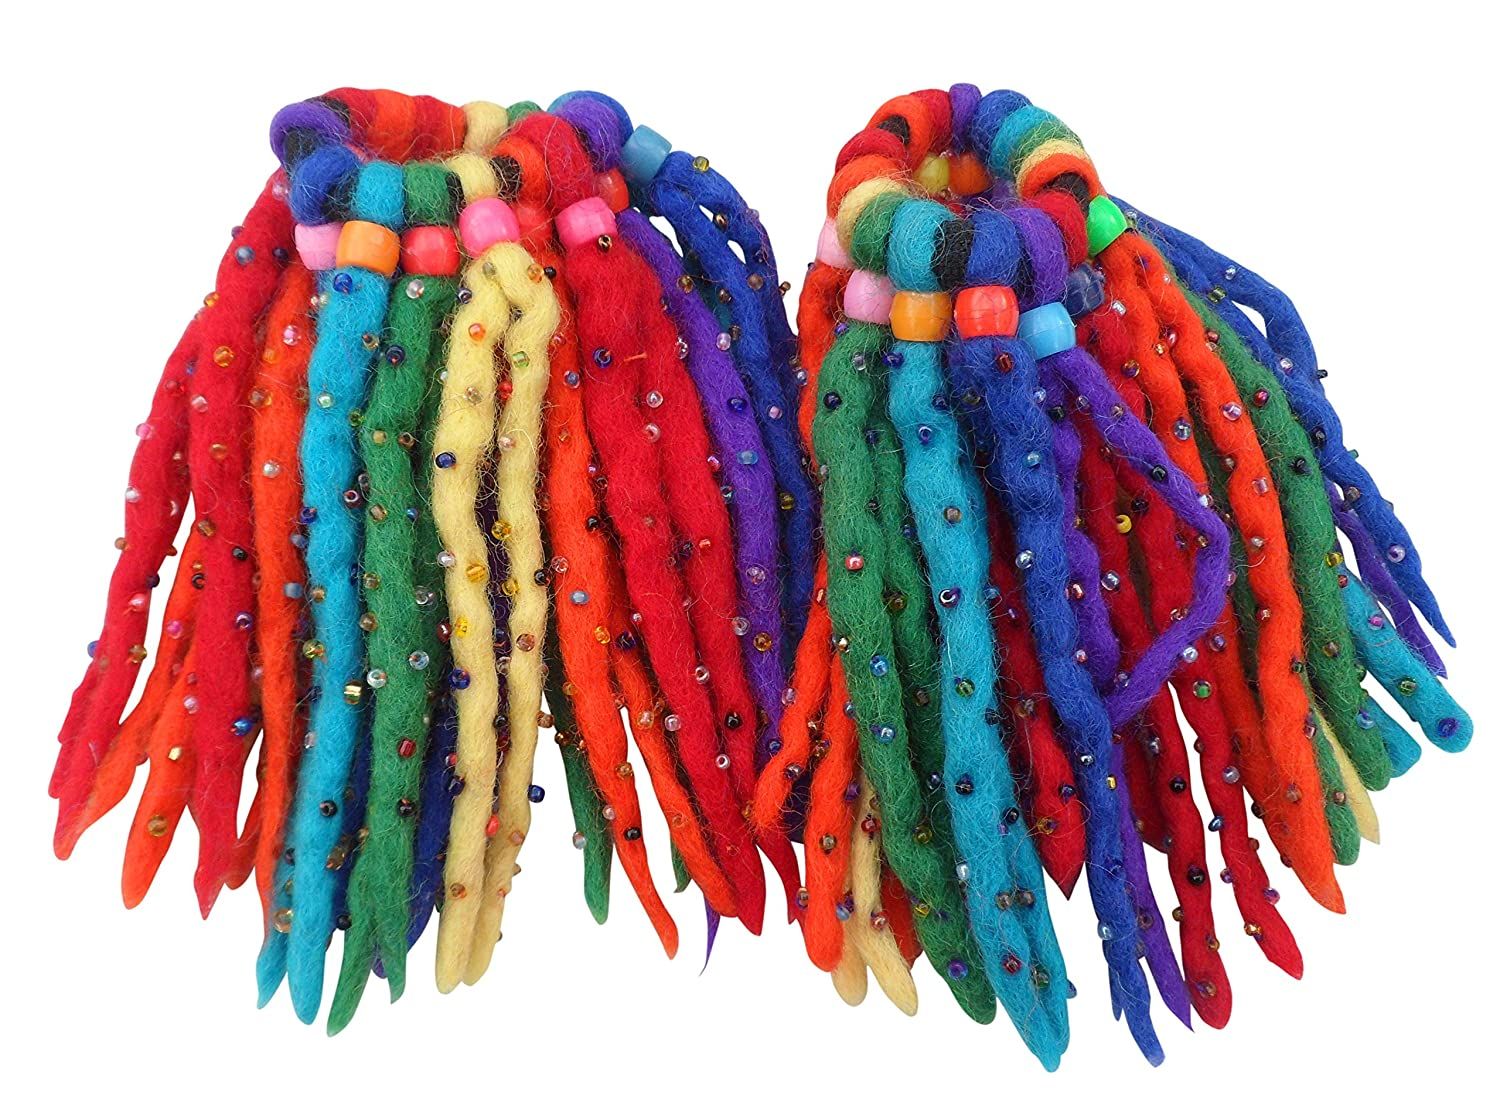 FAIR TRADE FELT WOOL COLOURED 16 KNOT ELASTIC HAIR SCRUNCHY DREADLOCKS 2 PACK